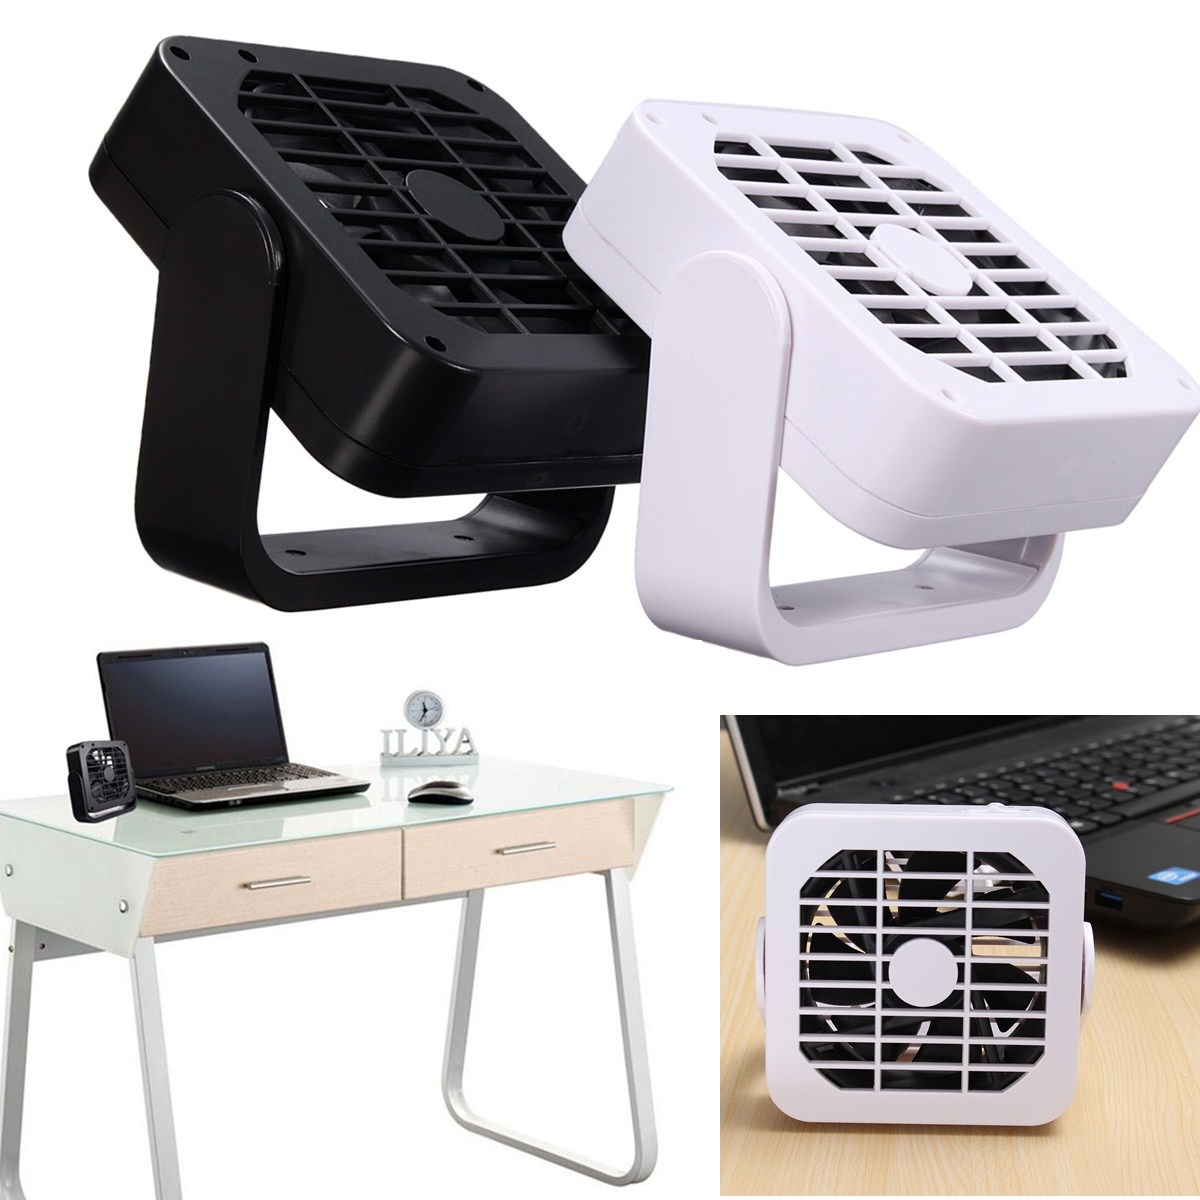 mini portable super mute usb desk fan cooler cooling desktop notebook laptop pc ebay. Black Bedroom Furniture Sets. Home Design Ideas